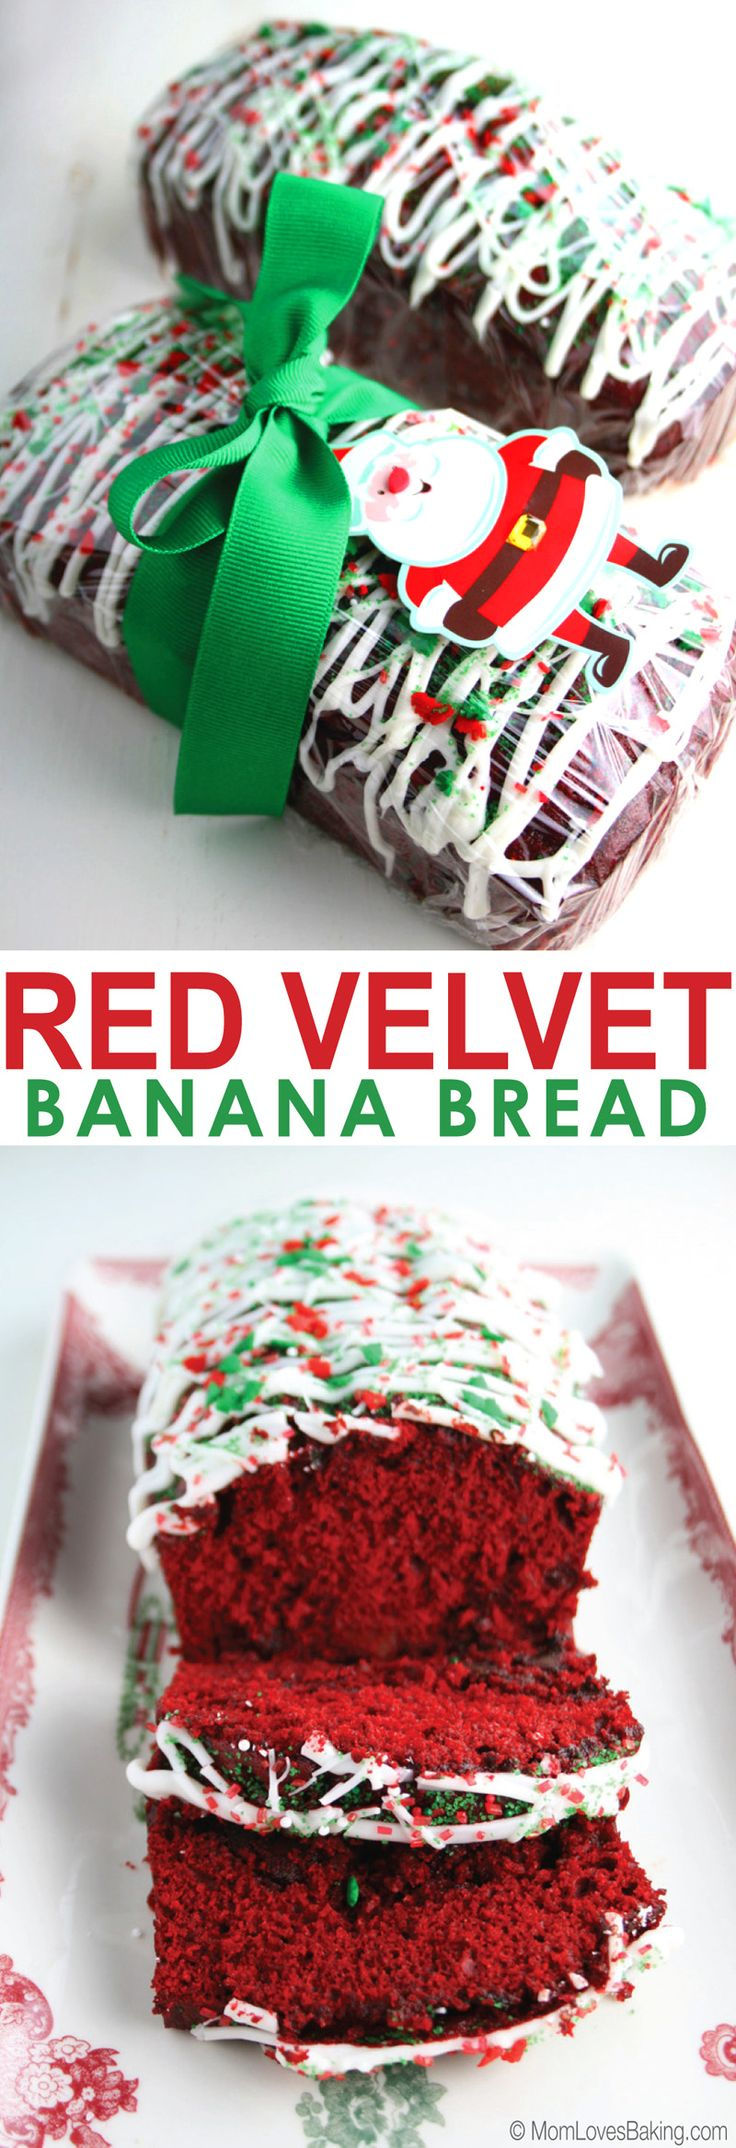 It's like banana bread and red velvet cake all at the same time. Plus it's drizzled with white chocolate and sprinkled with Christmas cheer! Great neighbor gift! Project from momlovesbaking.com